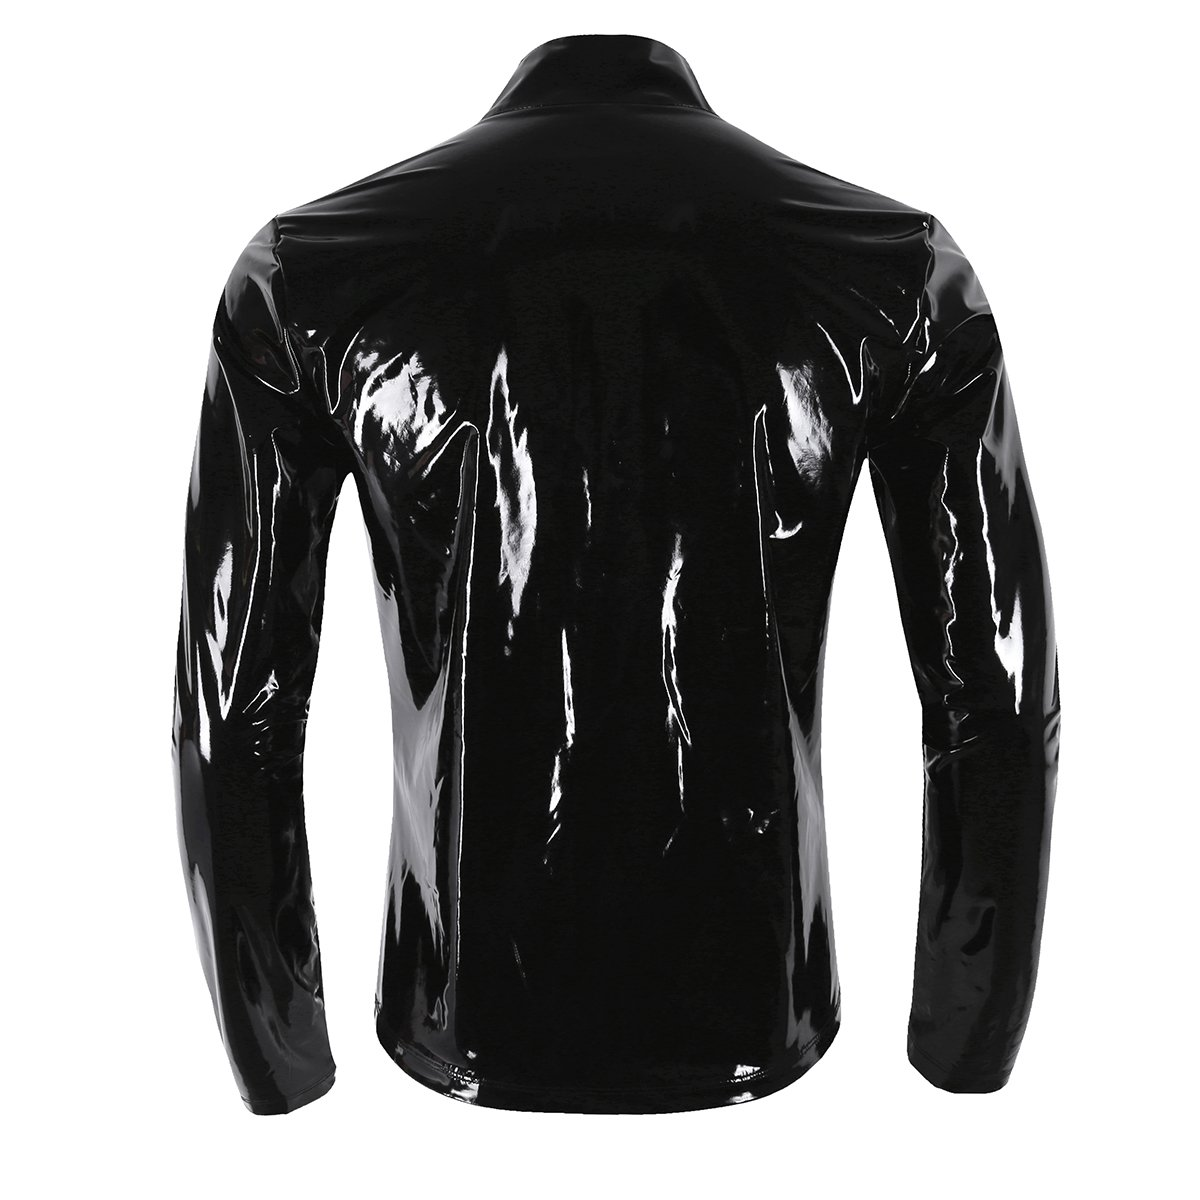 Agoky Men's Metallic Faux Leather Front-Zip Mock Neck Nightclub Style T-Shirt Top Coat Black XX-Large by Agoky (Image #3)